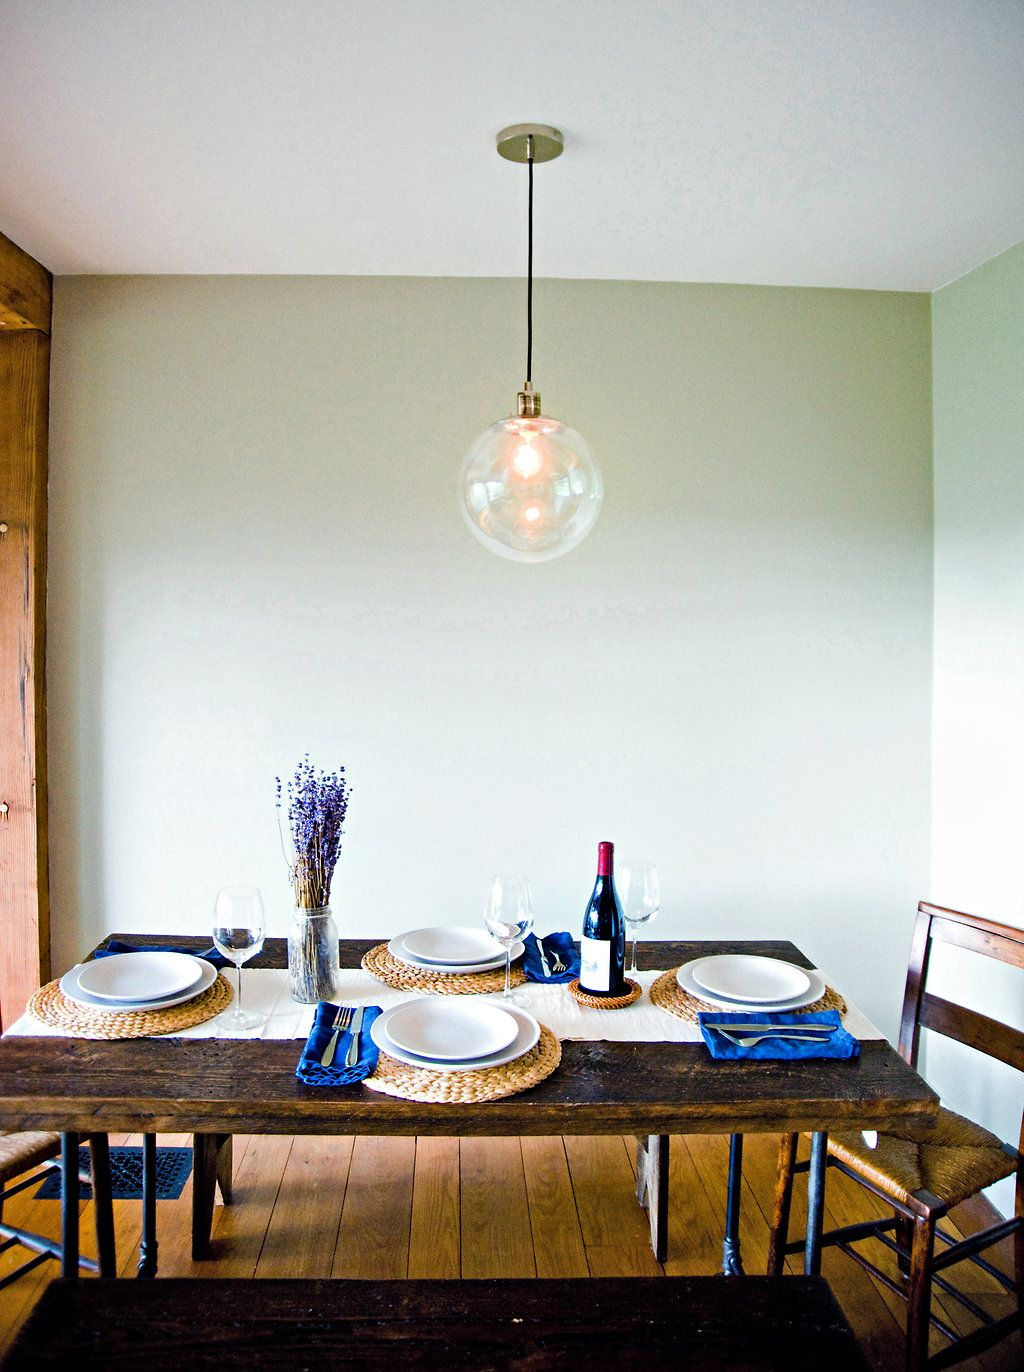 In Catskill N Y An Affordable Gem Dining Room Table Centerpieces Dining Room Paint Colors Decor